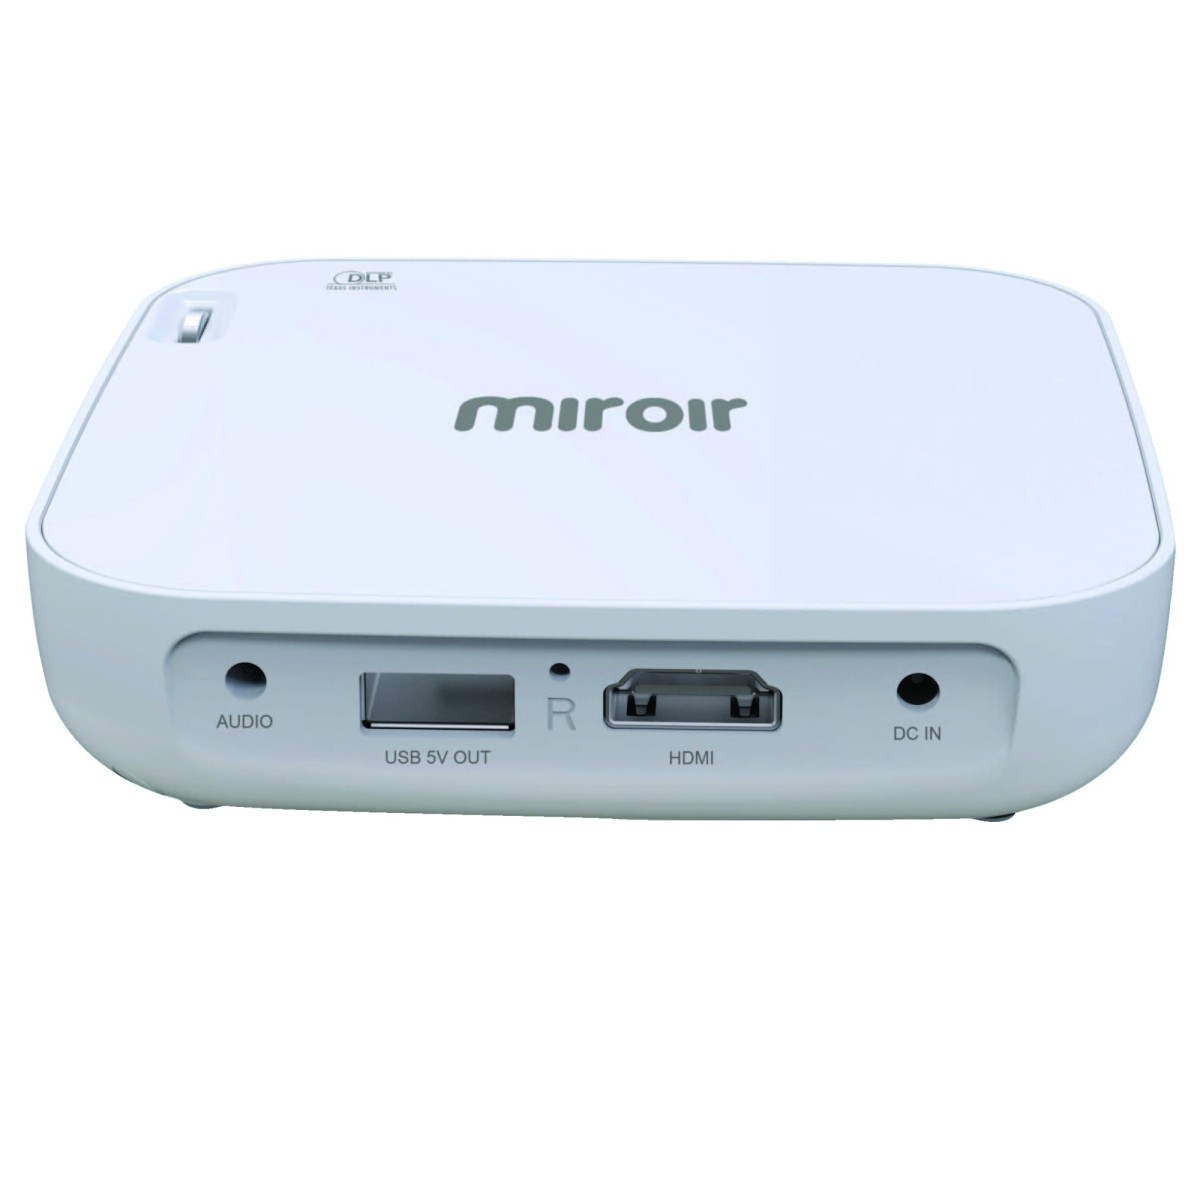 Miroir mp130 dlp wireless portable projector 16 9 aspect for Miroir projectors